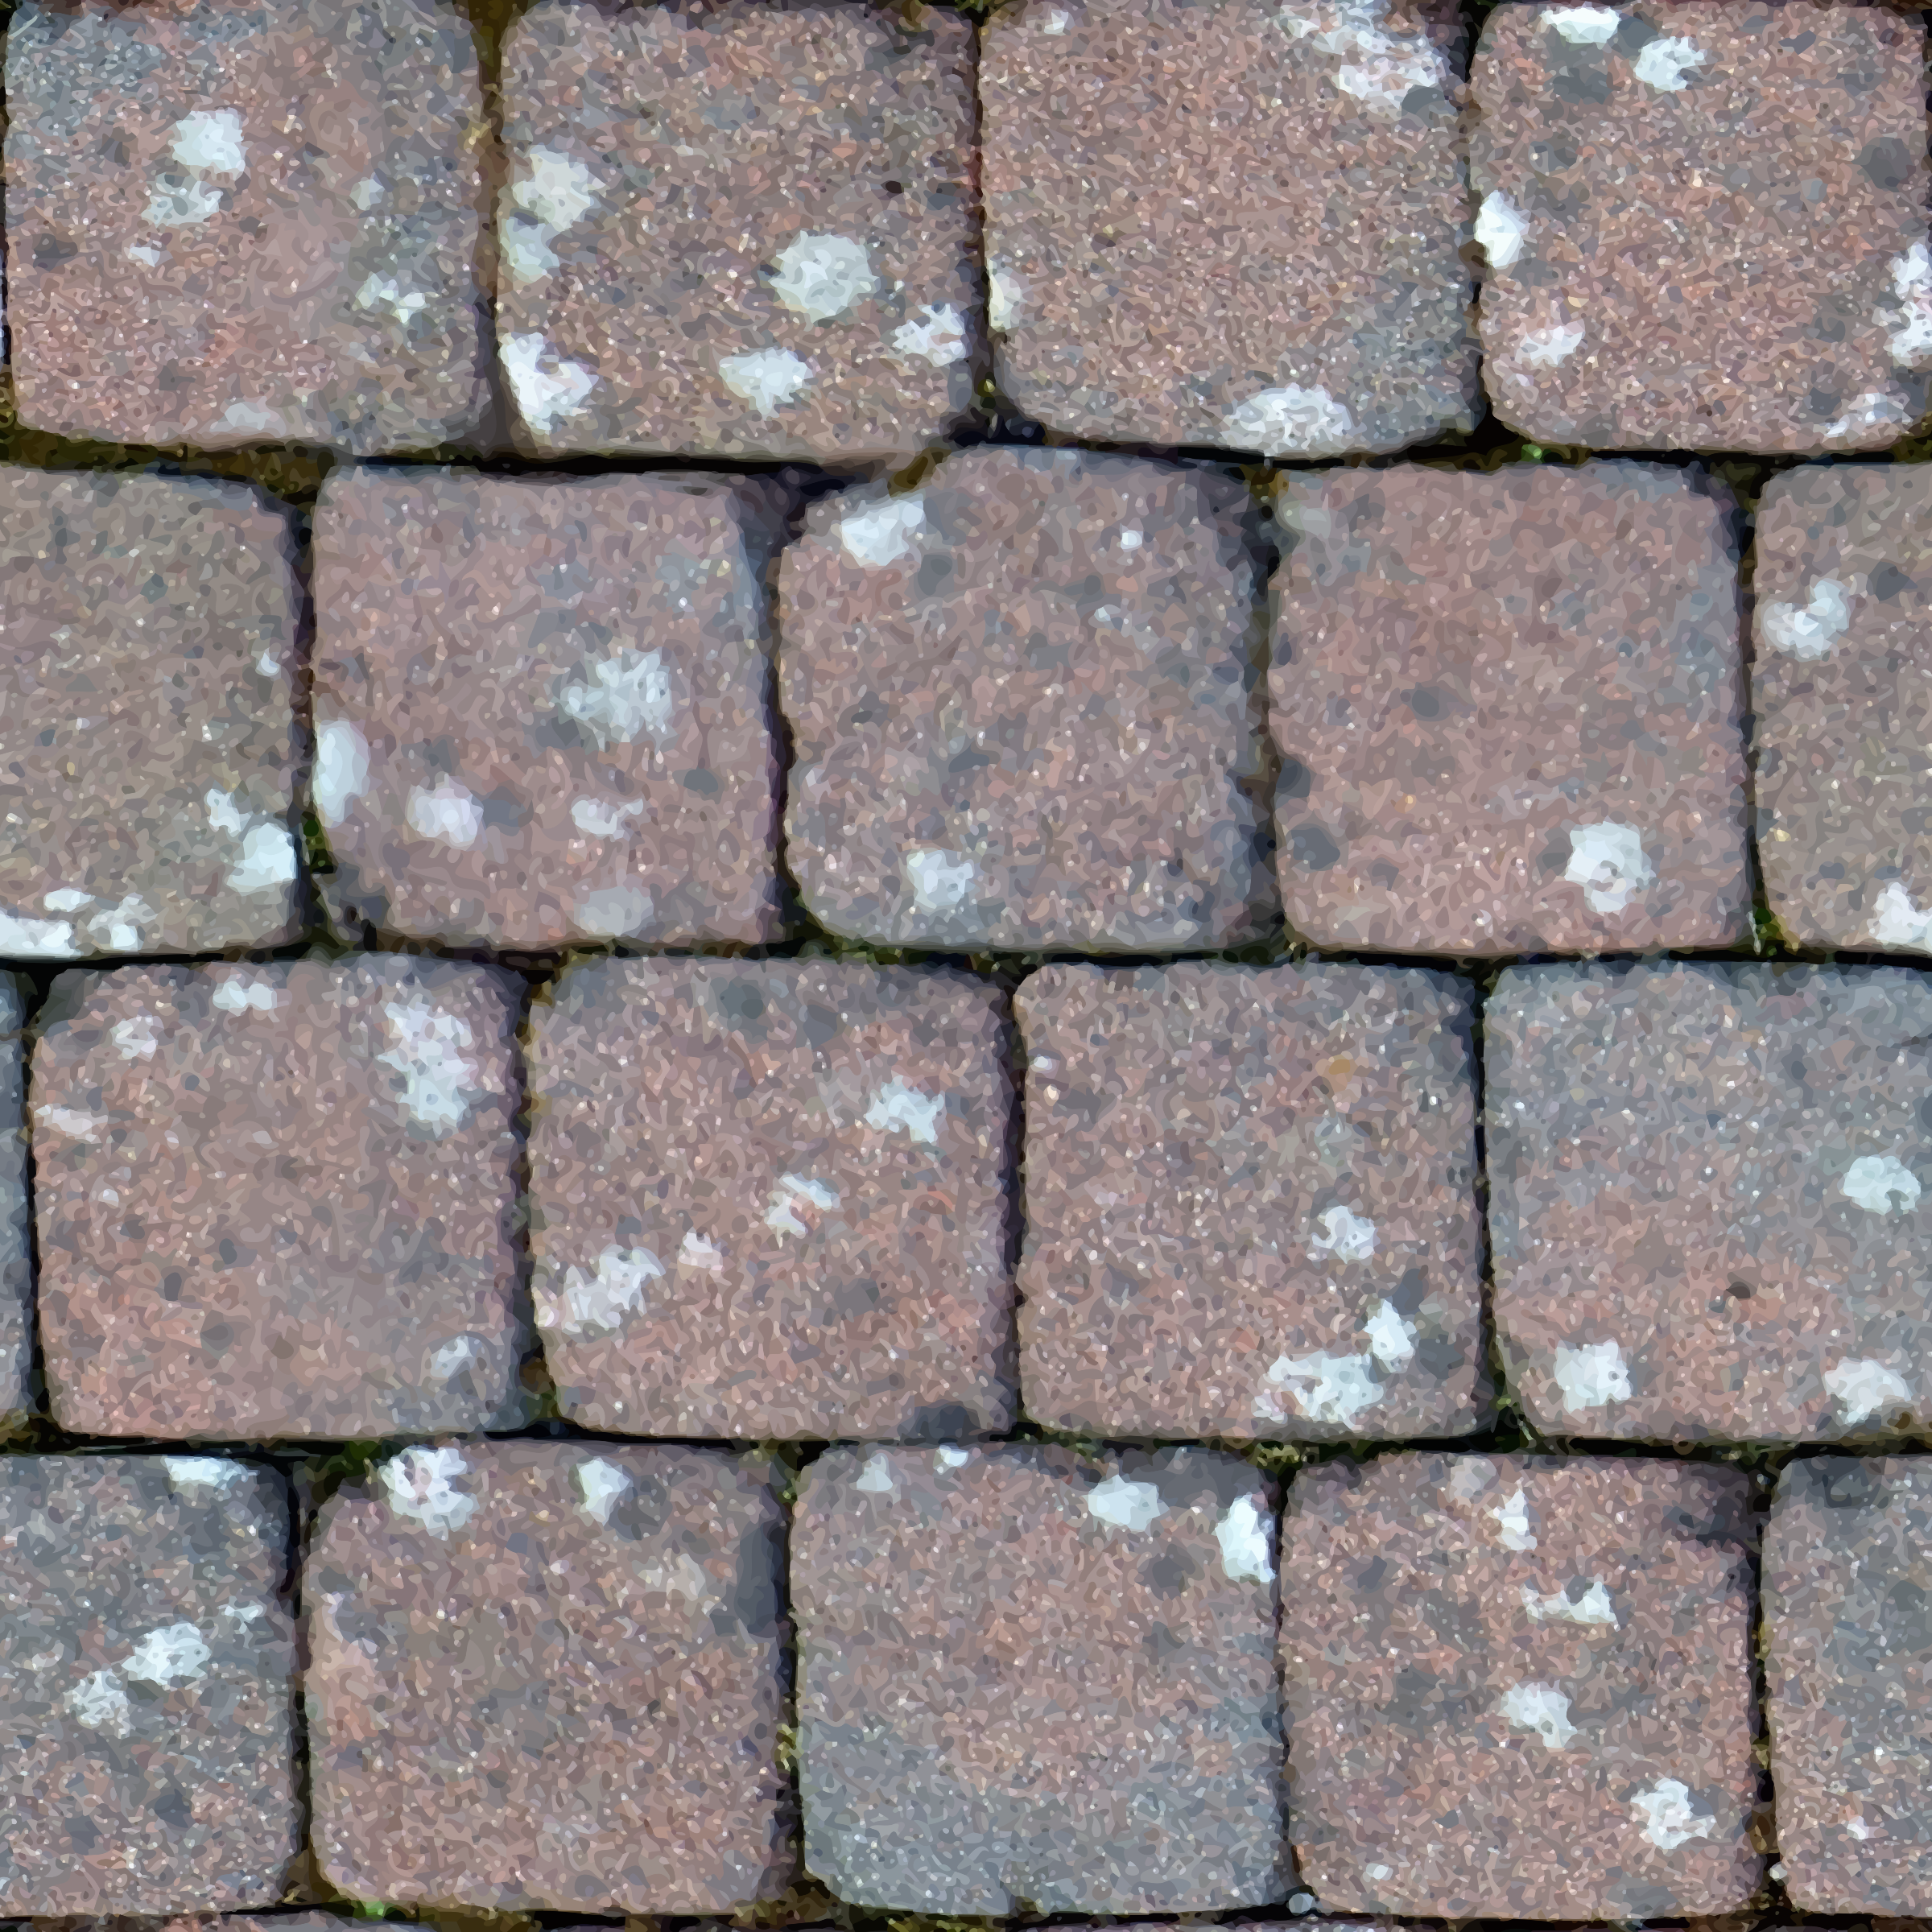 Paving blocks by Firkin